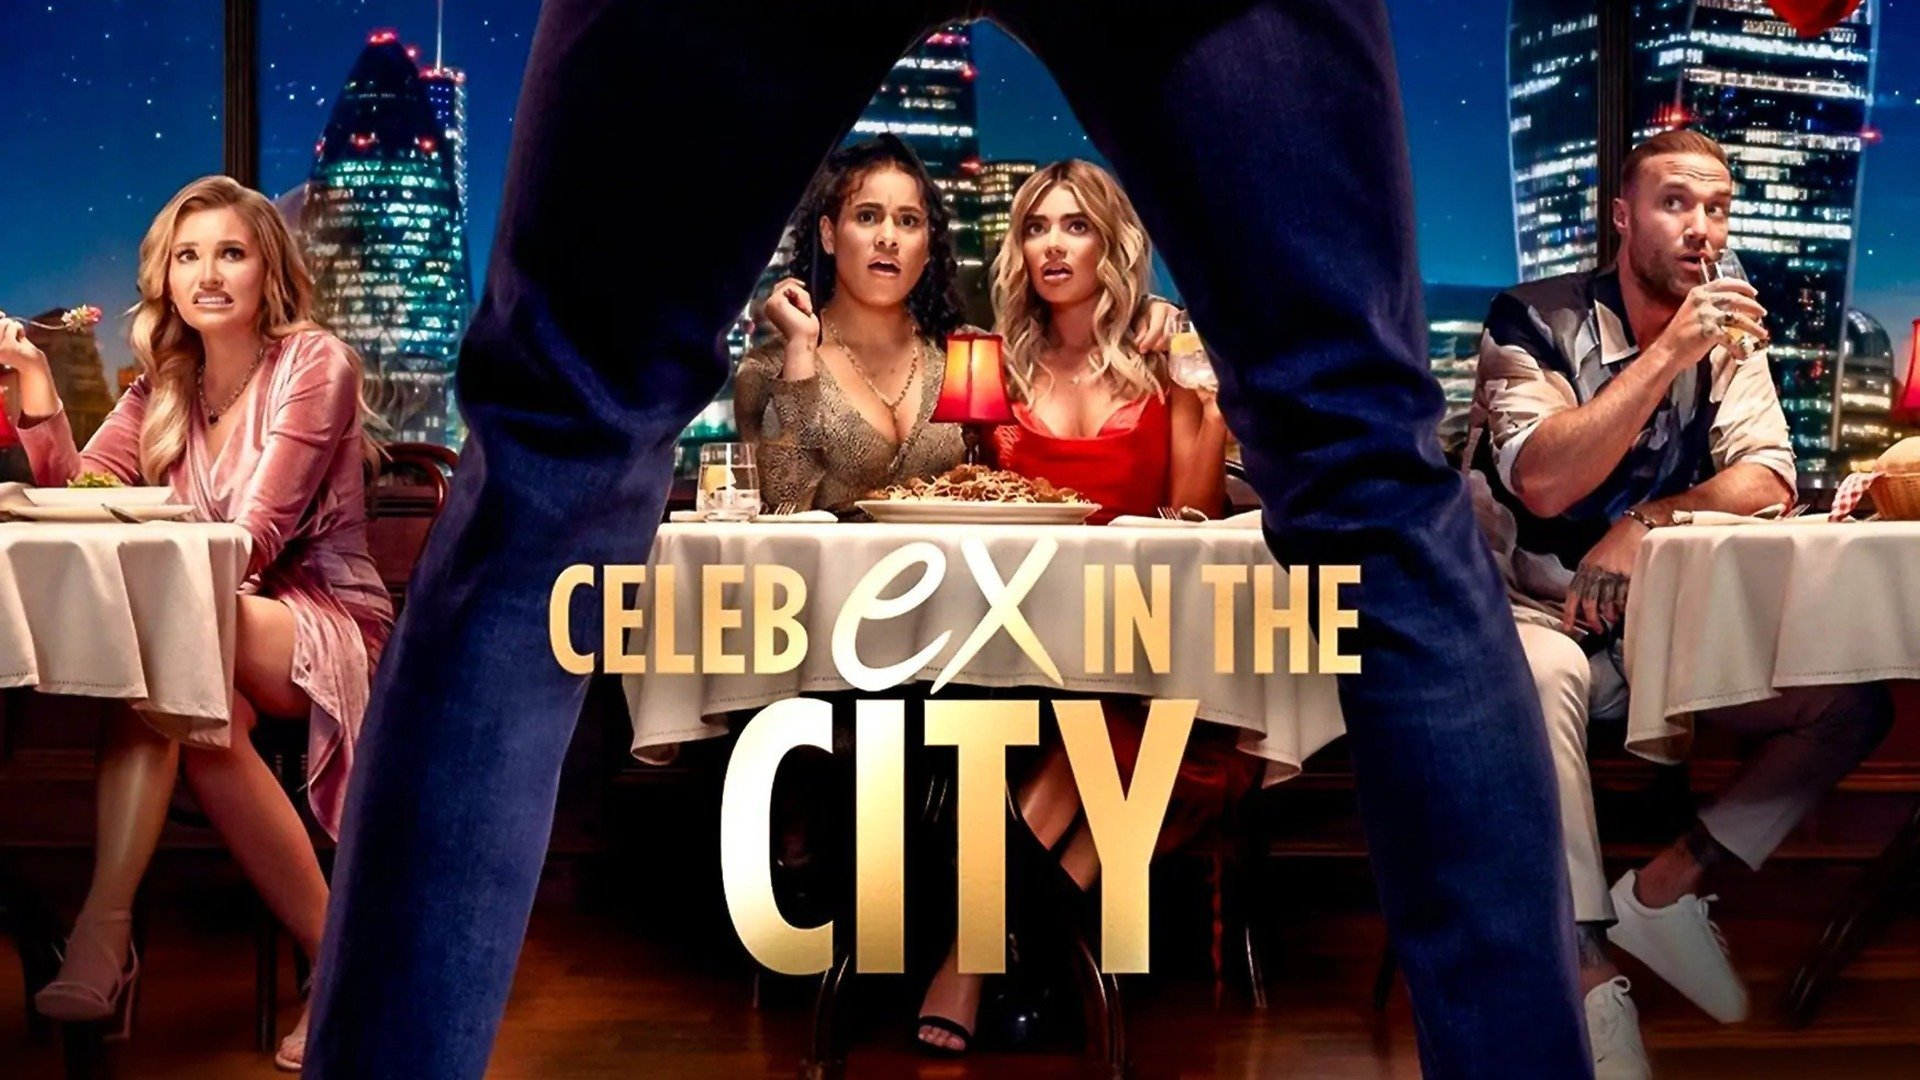 Celebrity Ex in the City